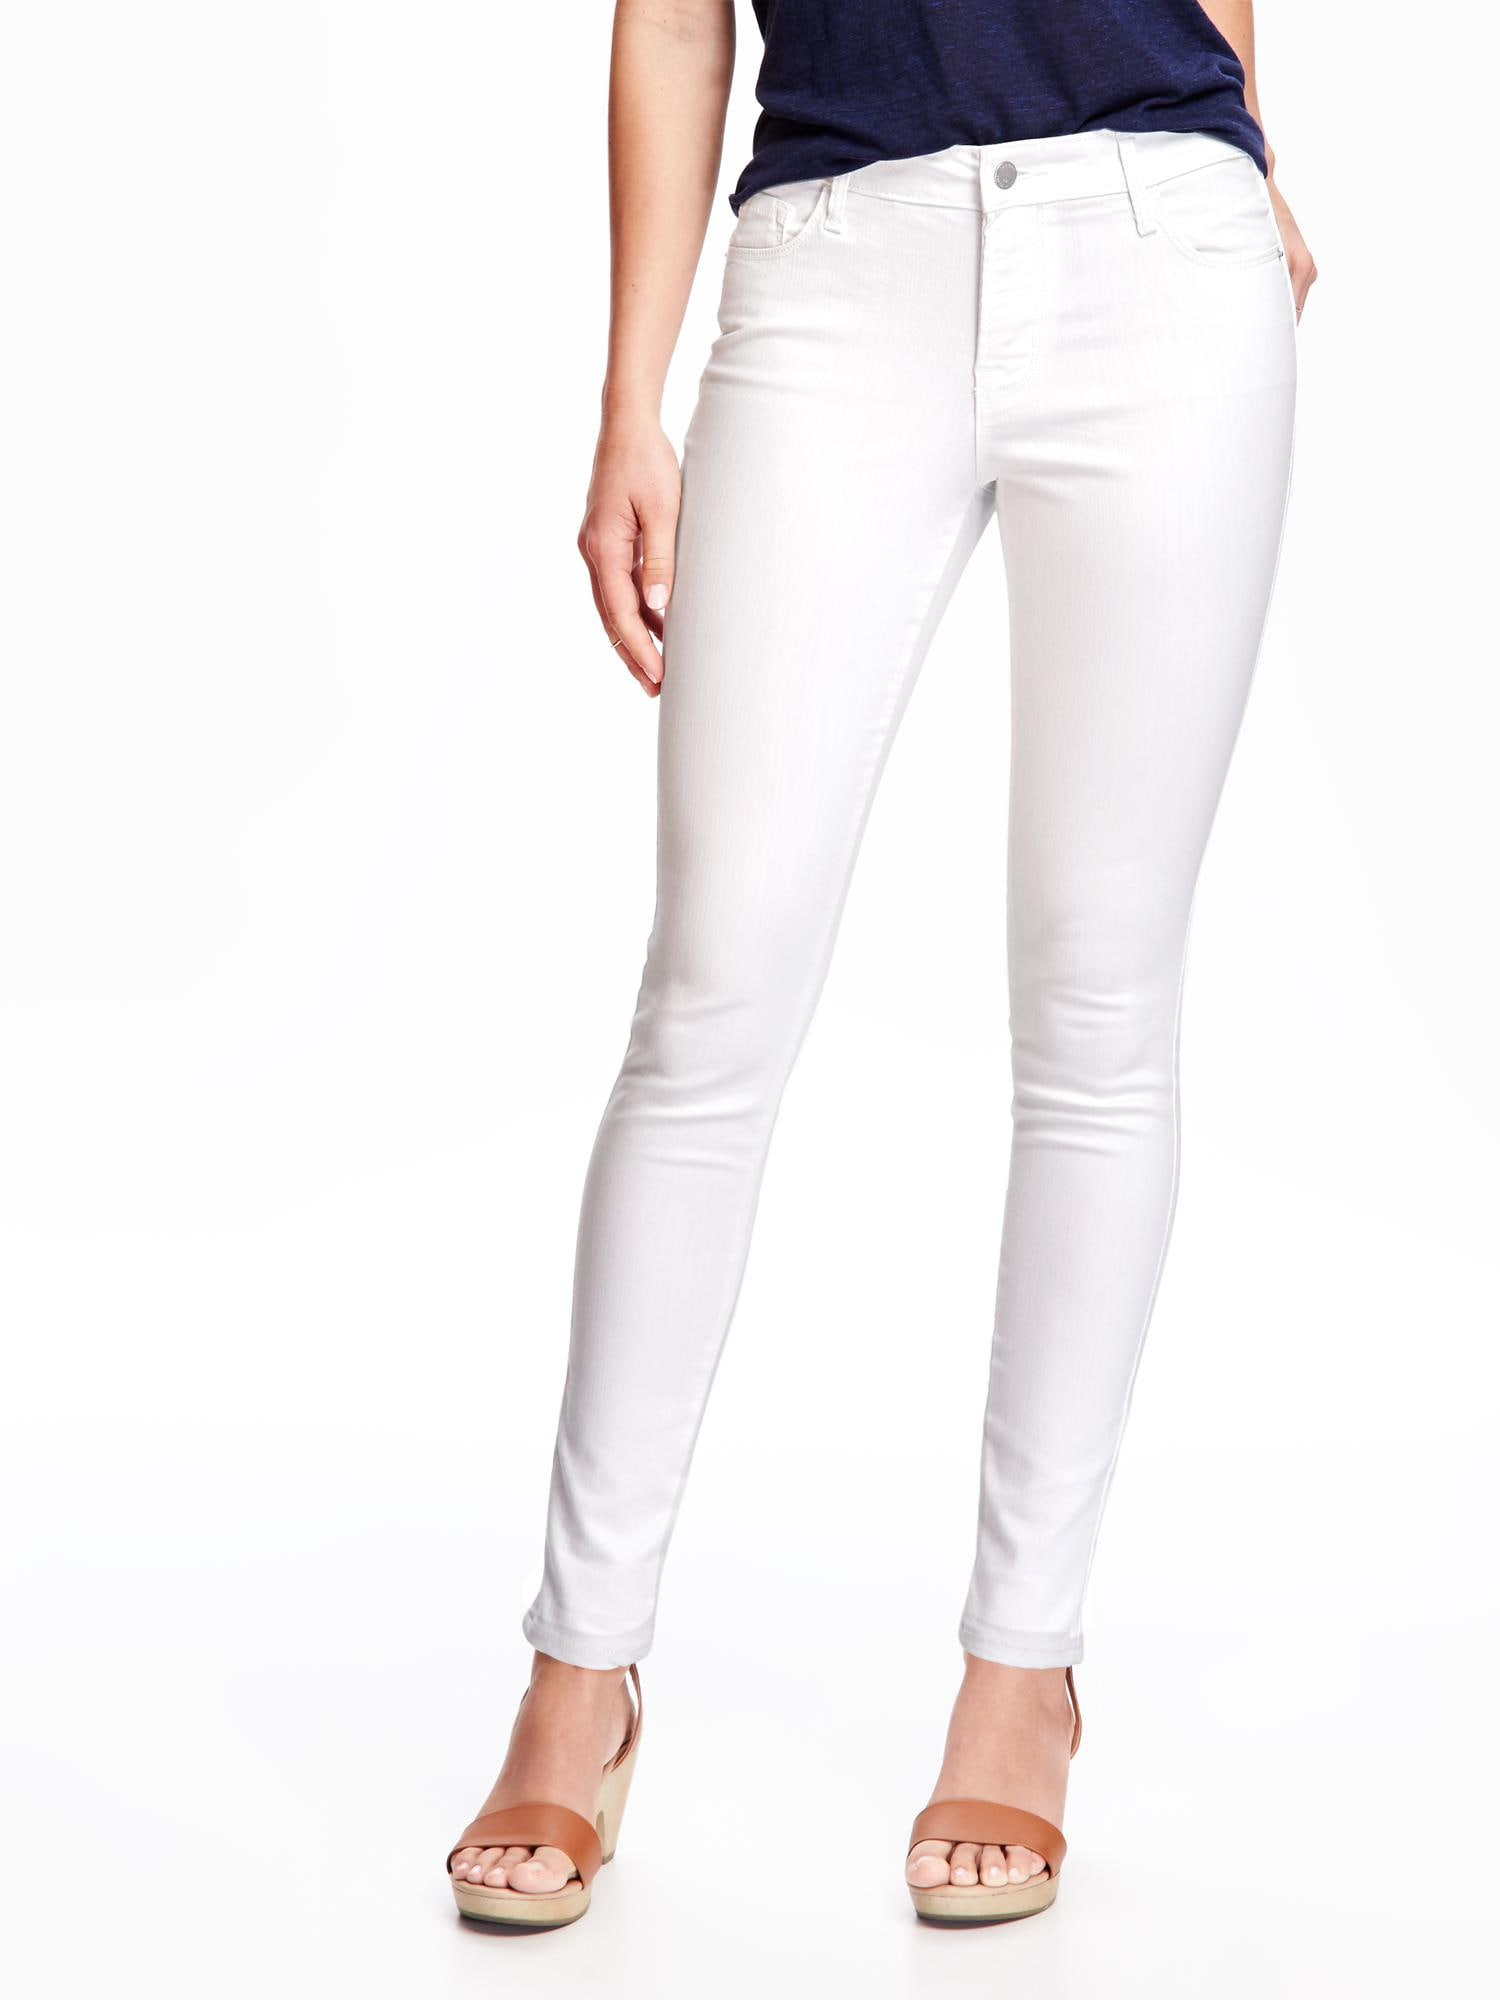 Mid-Rise Stay White Rockstar Skinny Jeans for Women | Old Navy